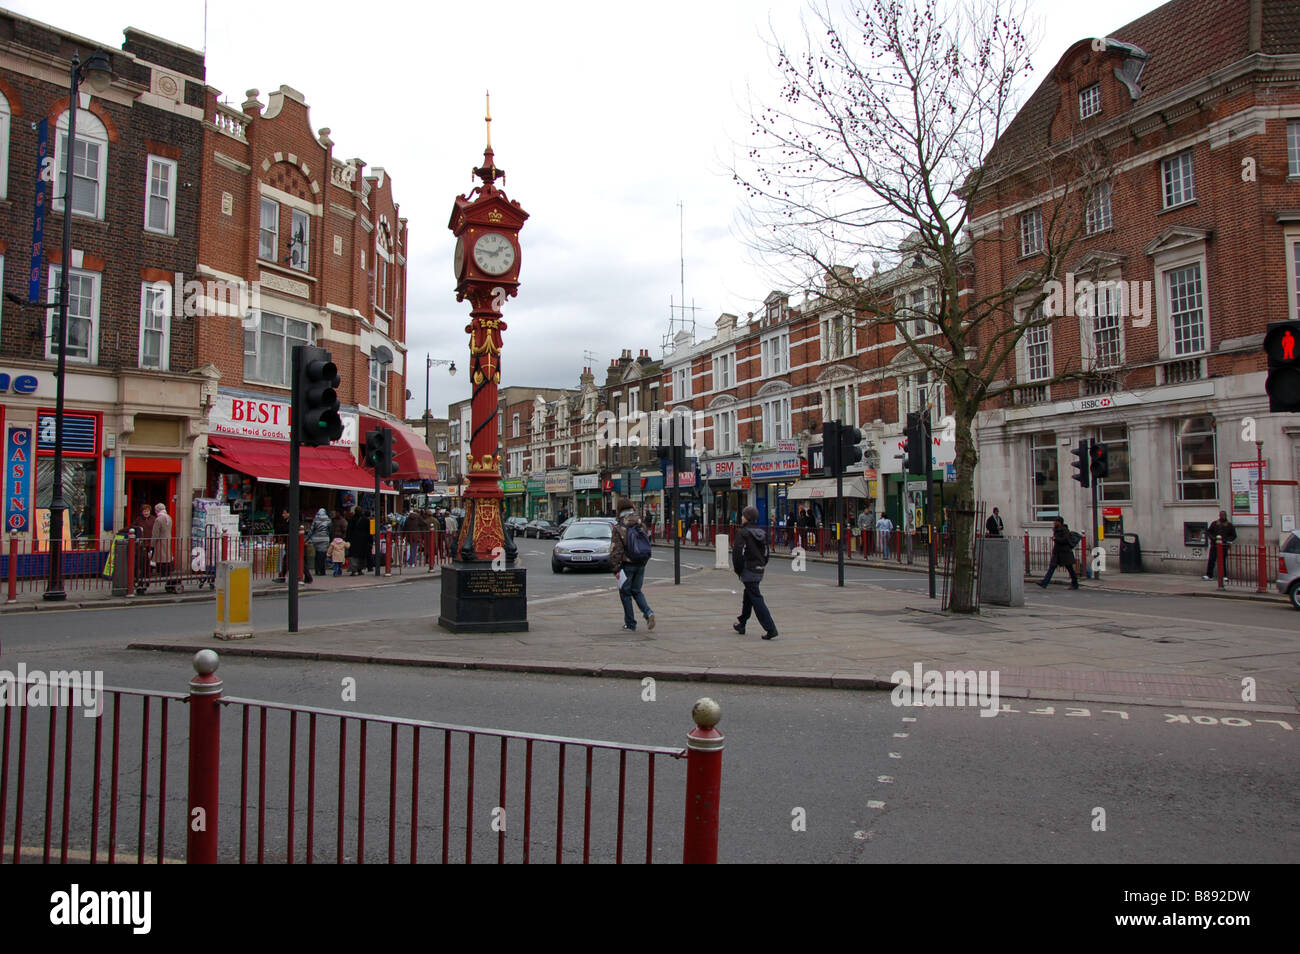 Jubilee Clock, High St, Harlesden, London, England - Stock Image